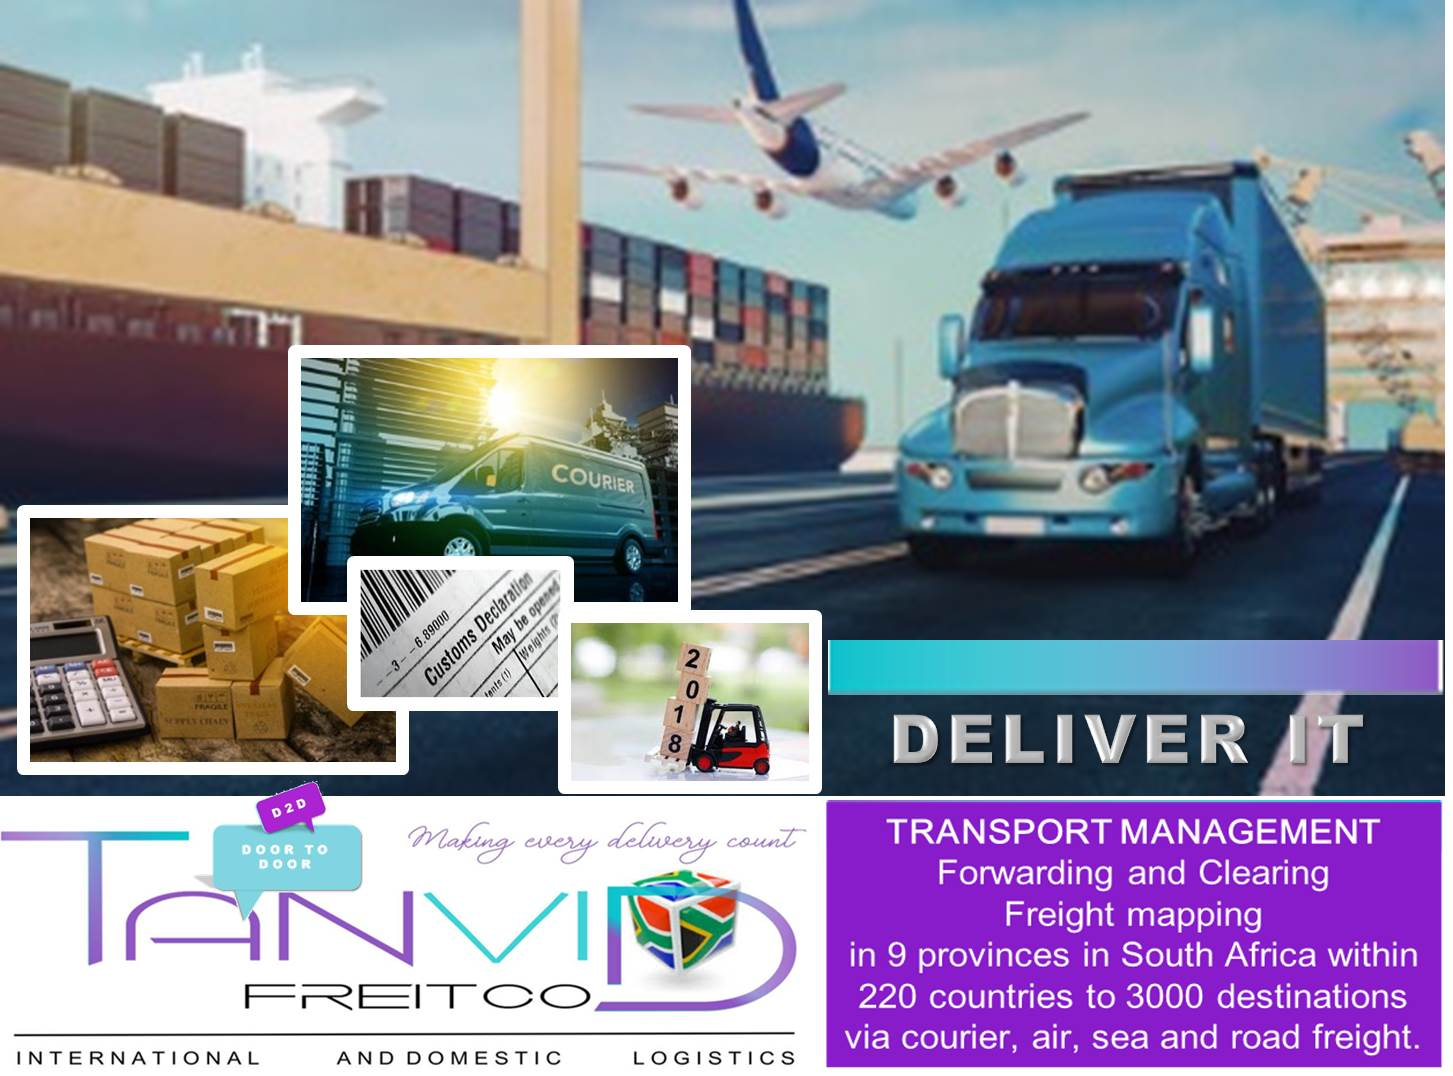 Tanvid Freitco and Courier Service Land Courier & Distribution